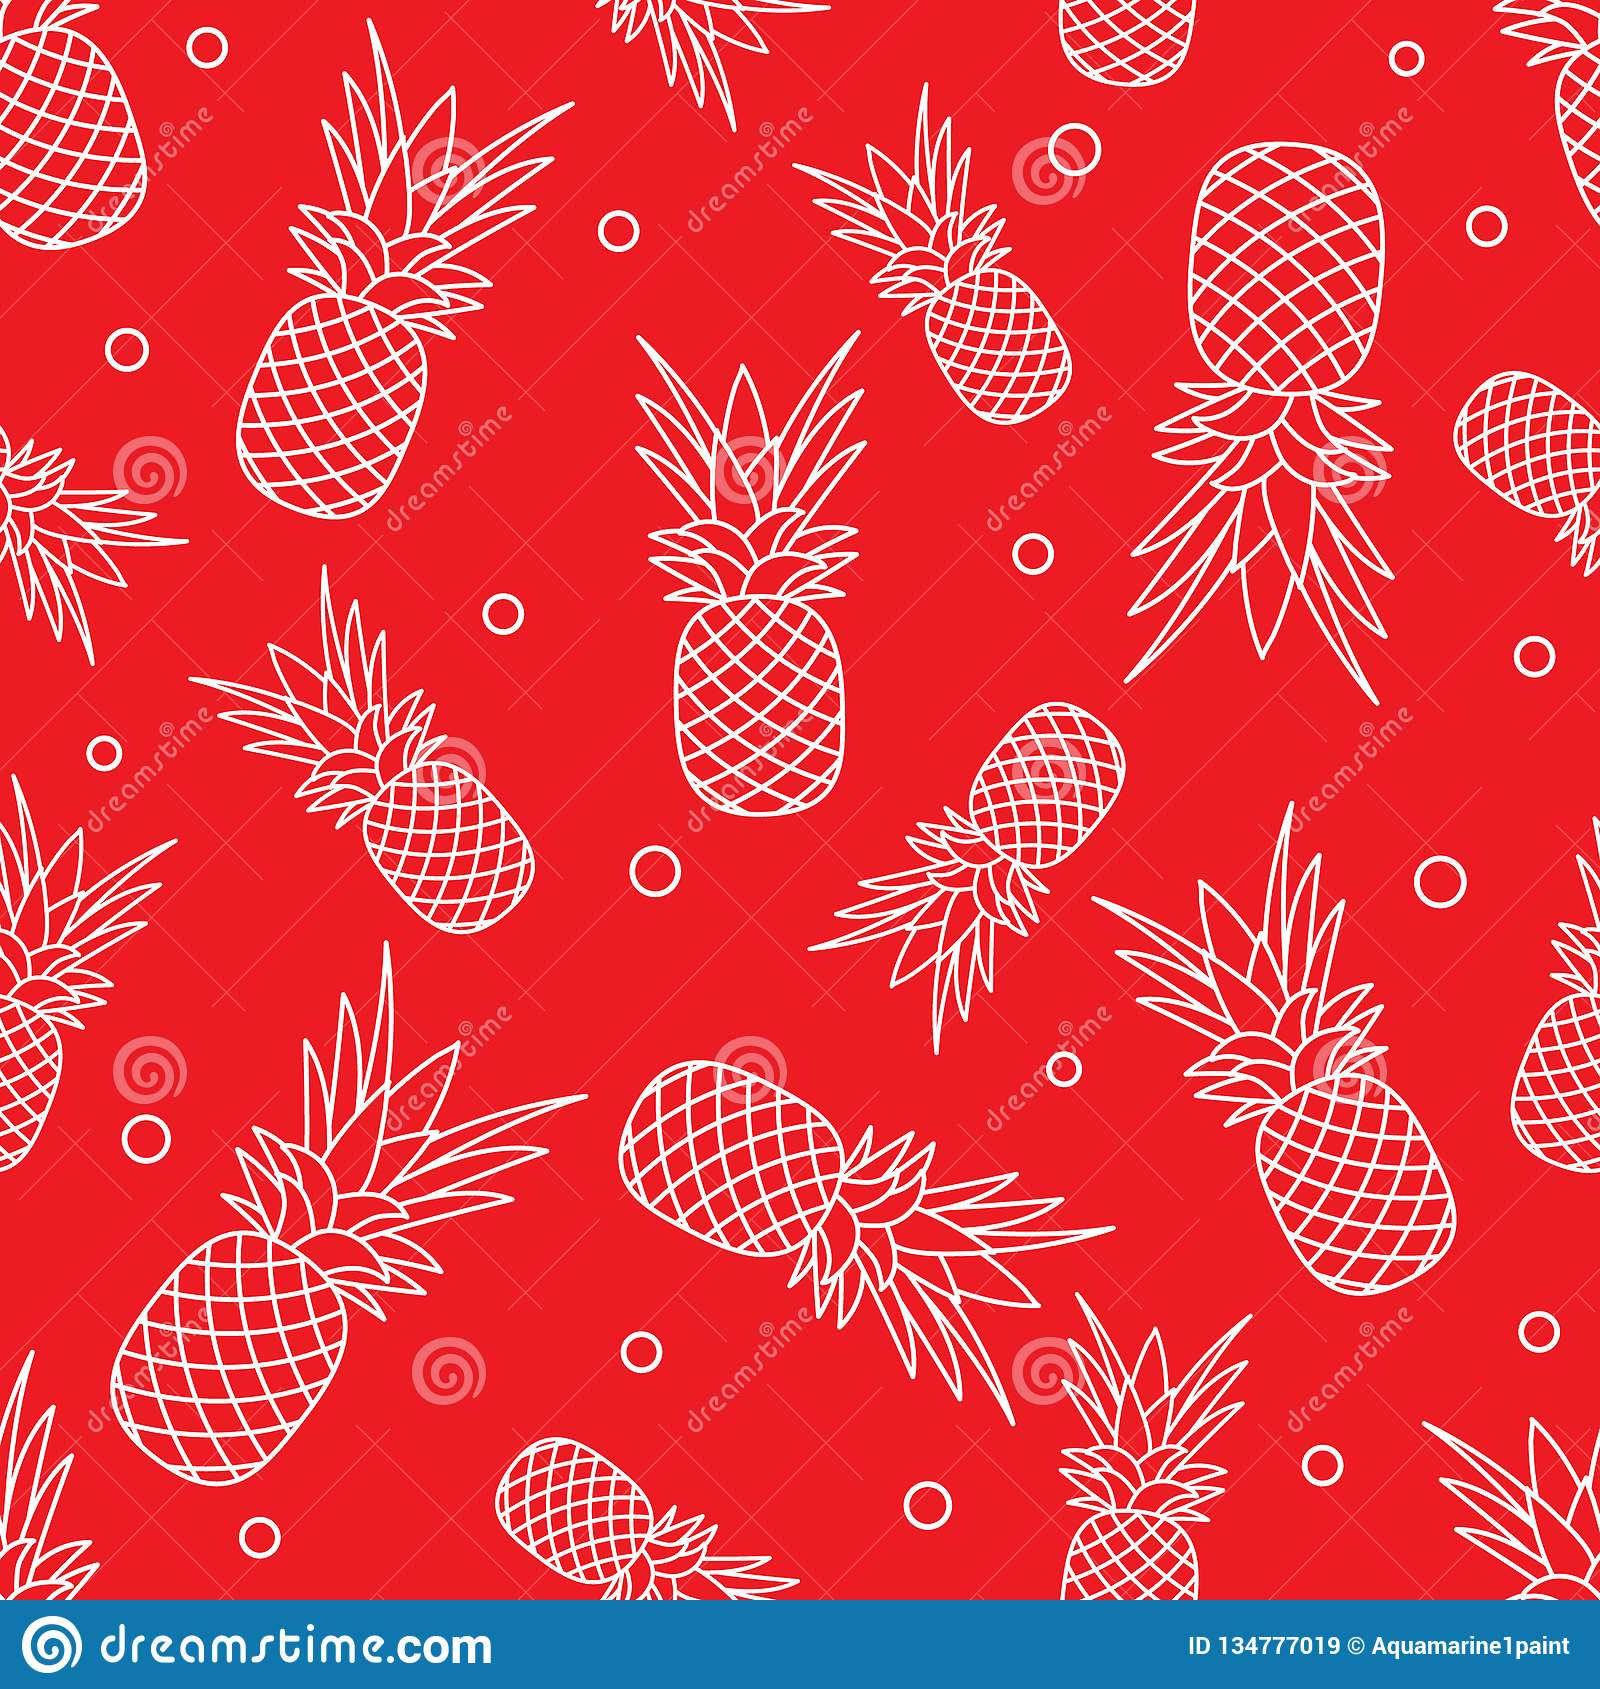 Seamless pattern with pineapples. Tropical fruit